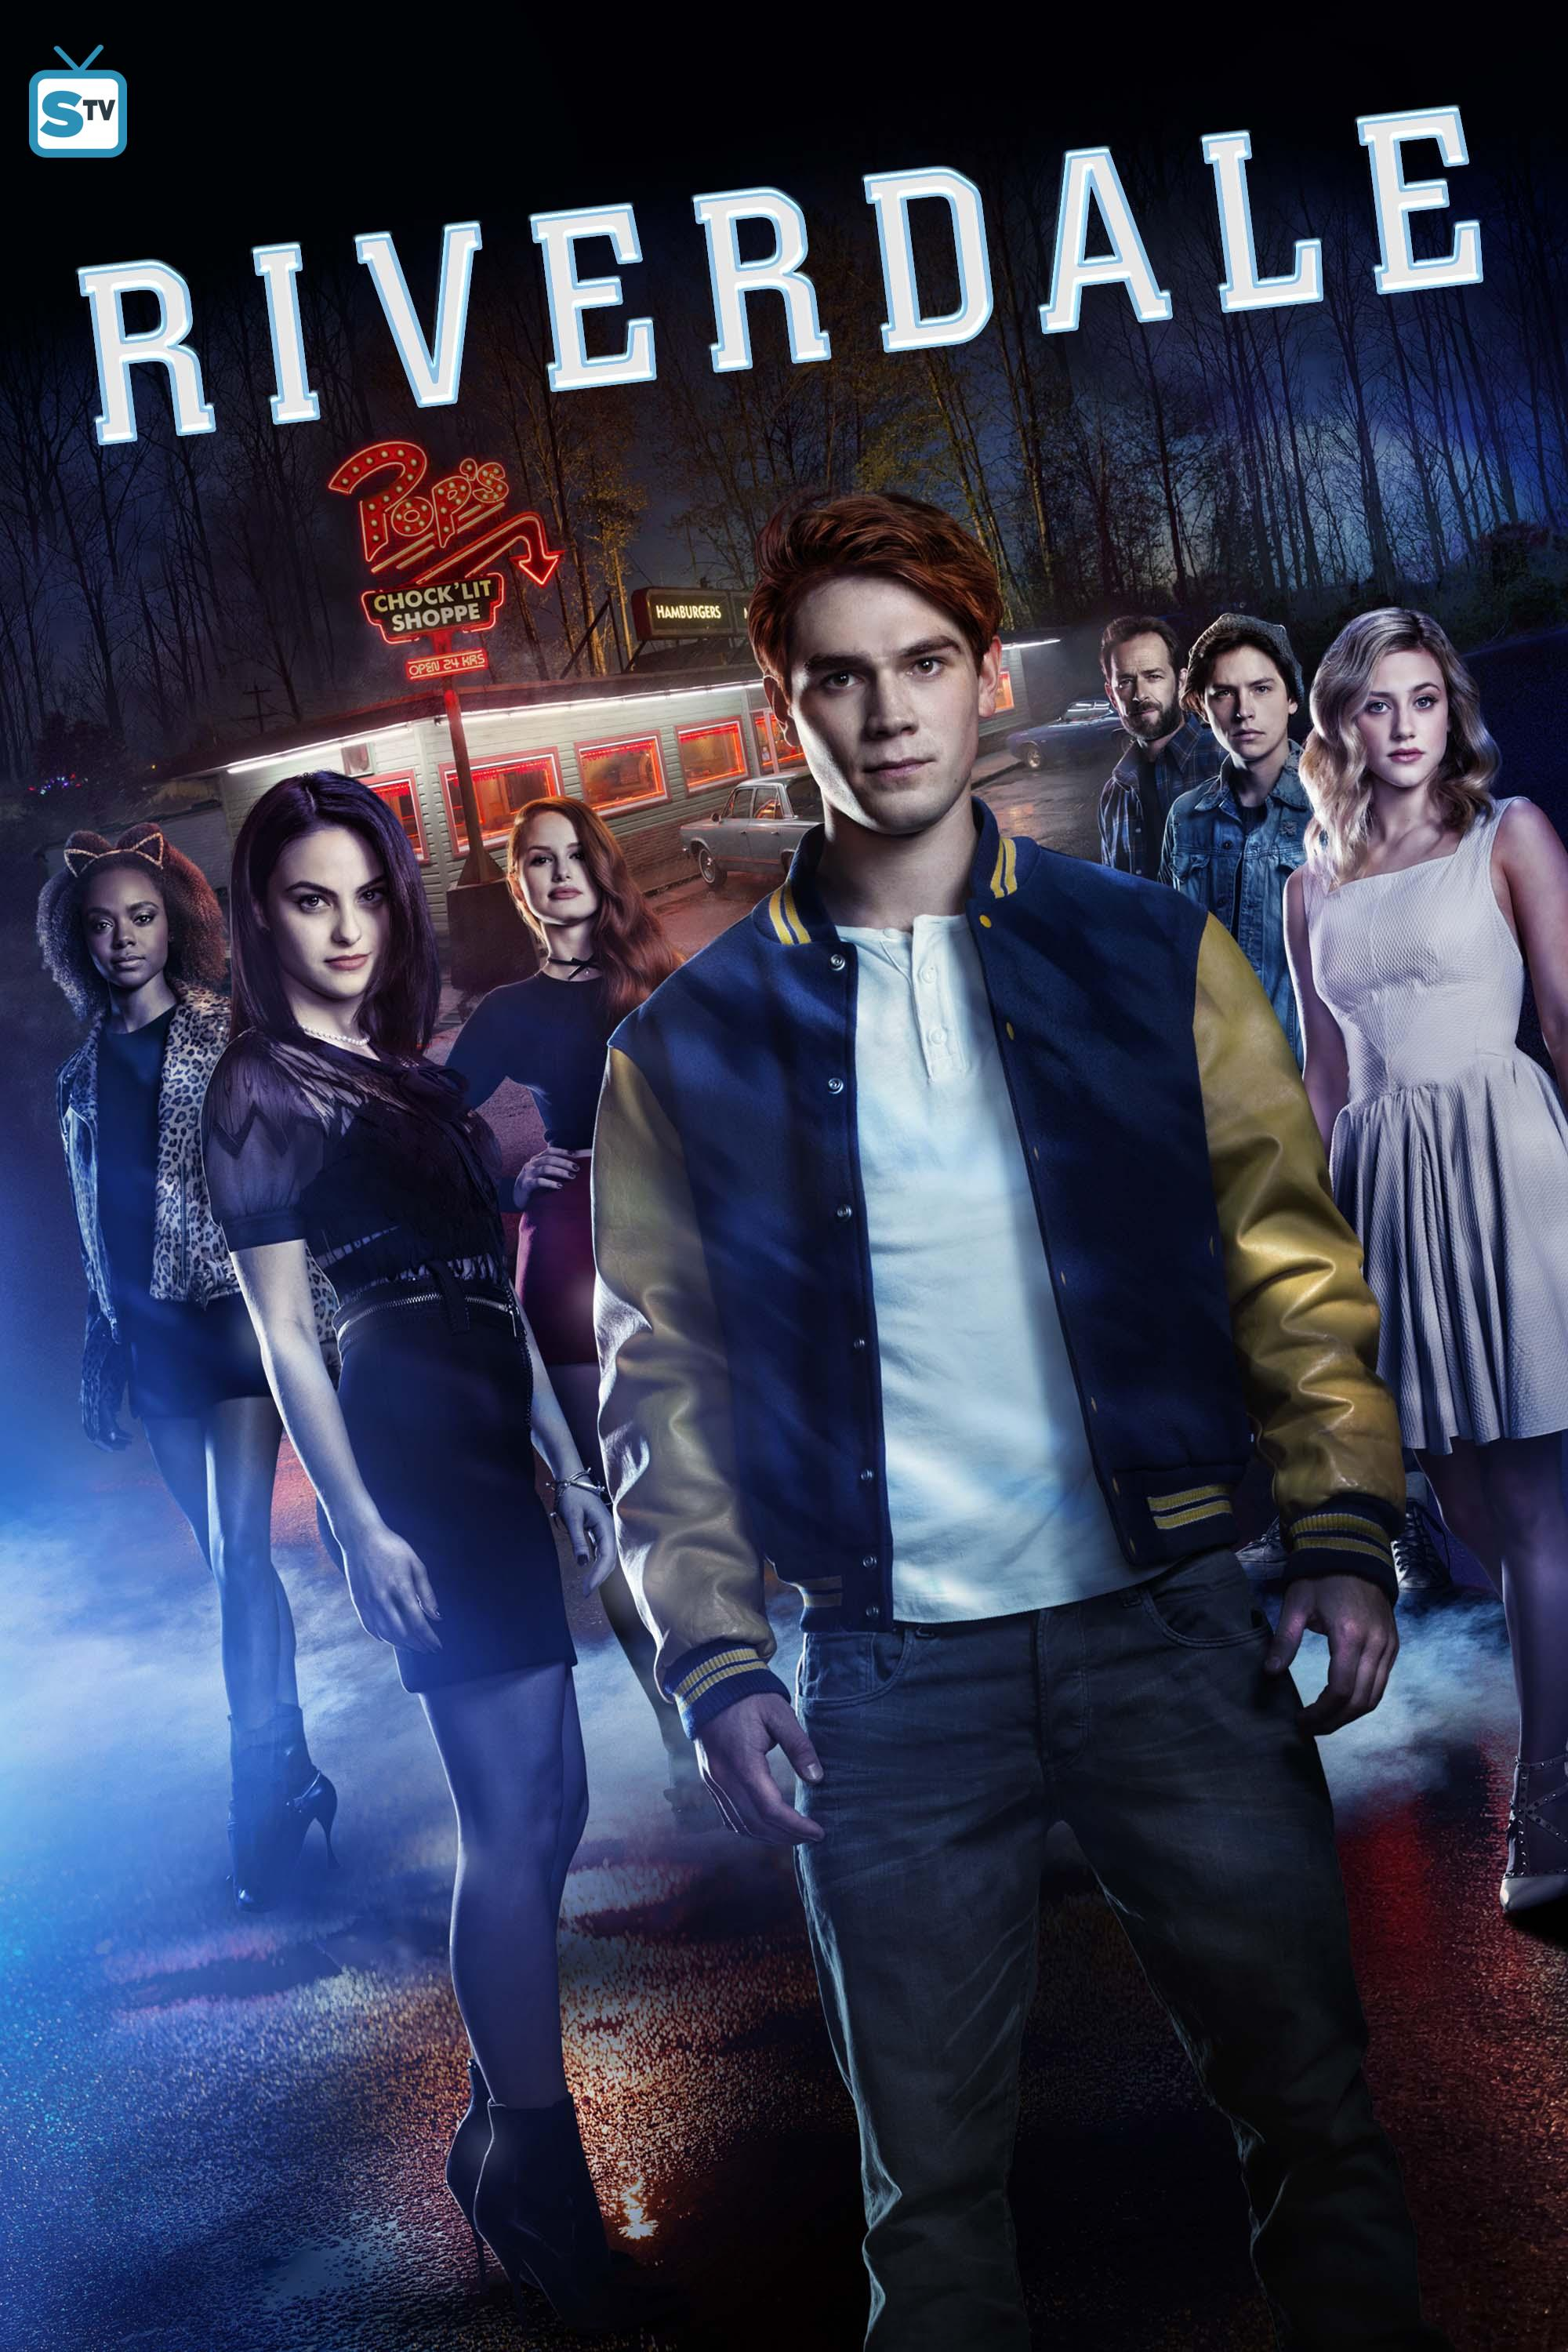 riverdale (2017 tv series) images riverdale poster hd wallpaper and